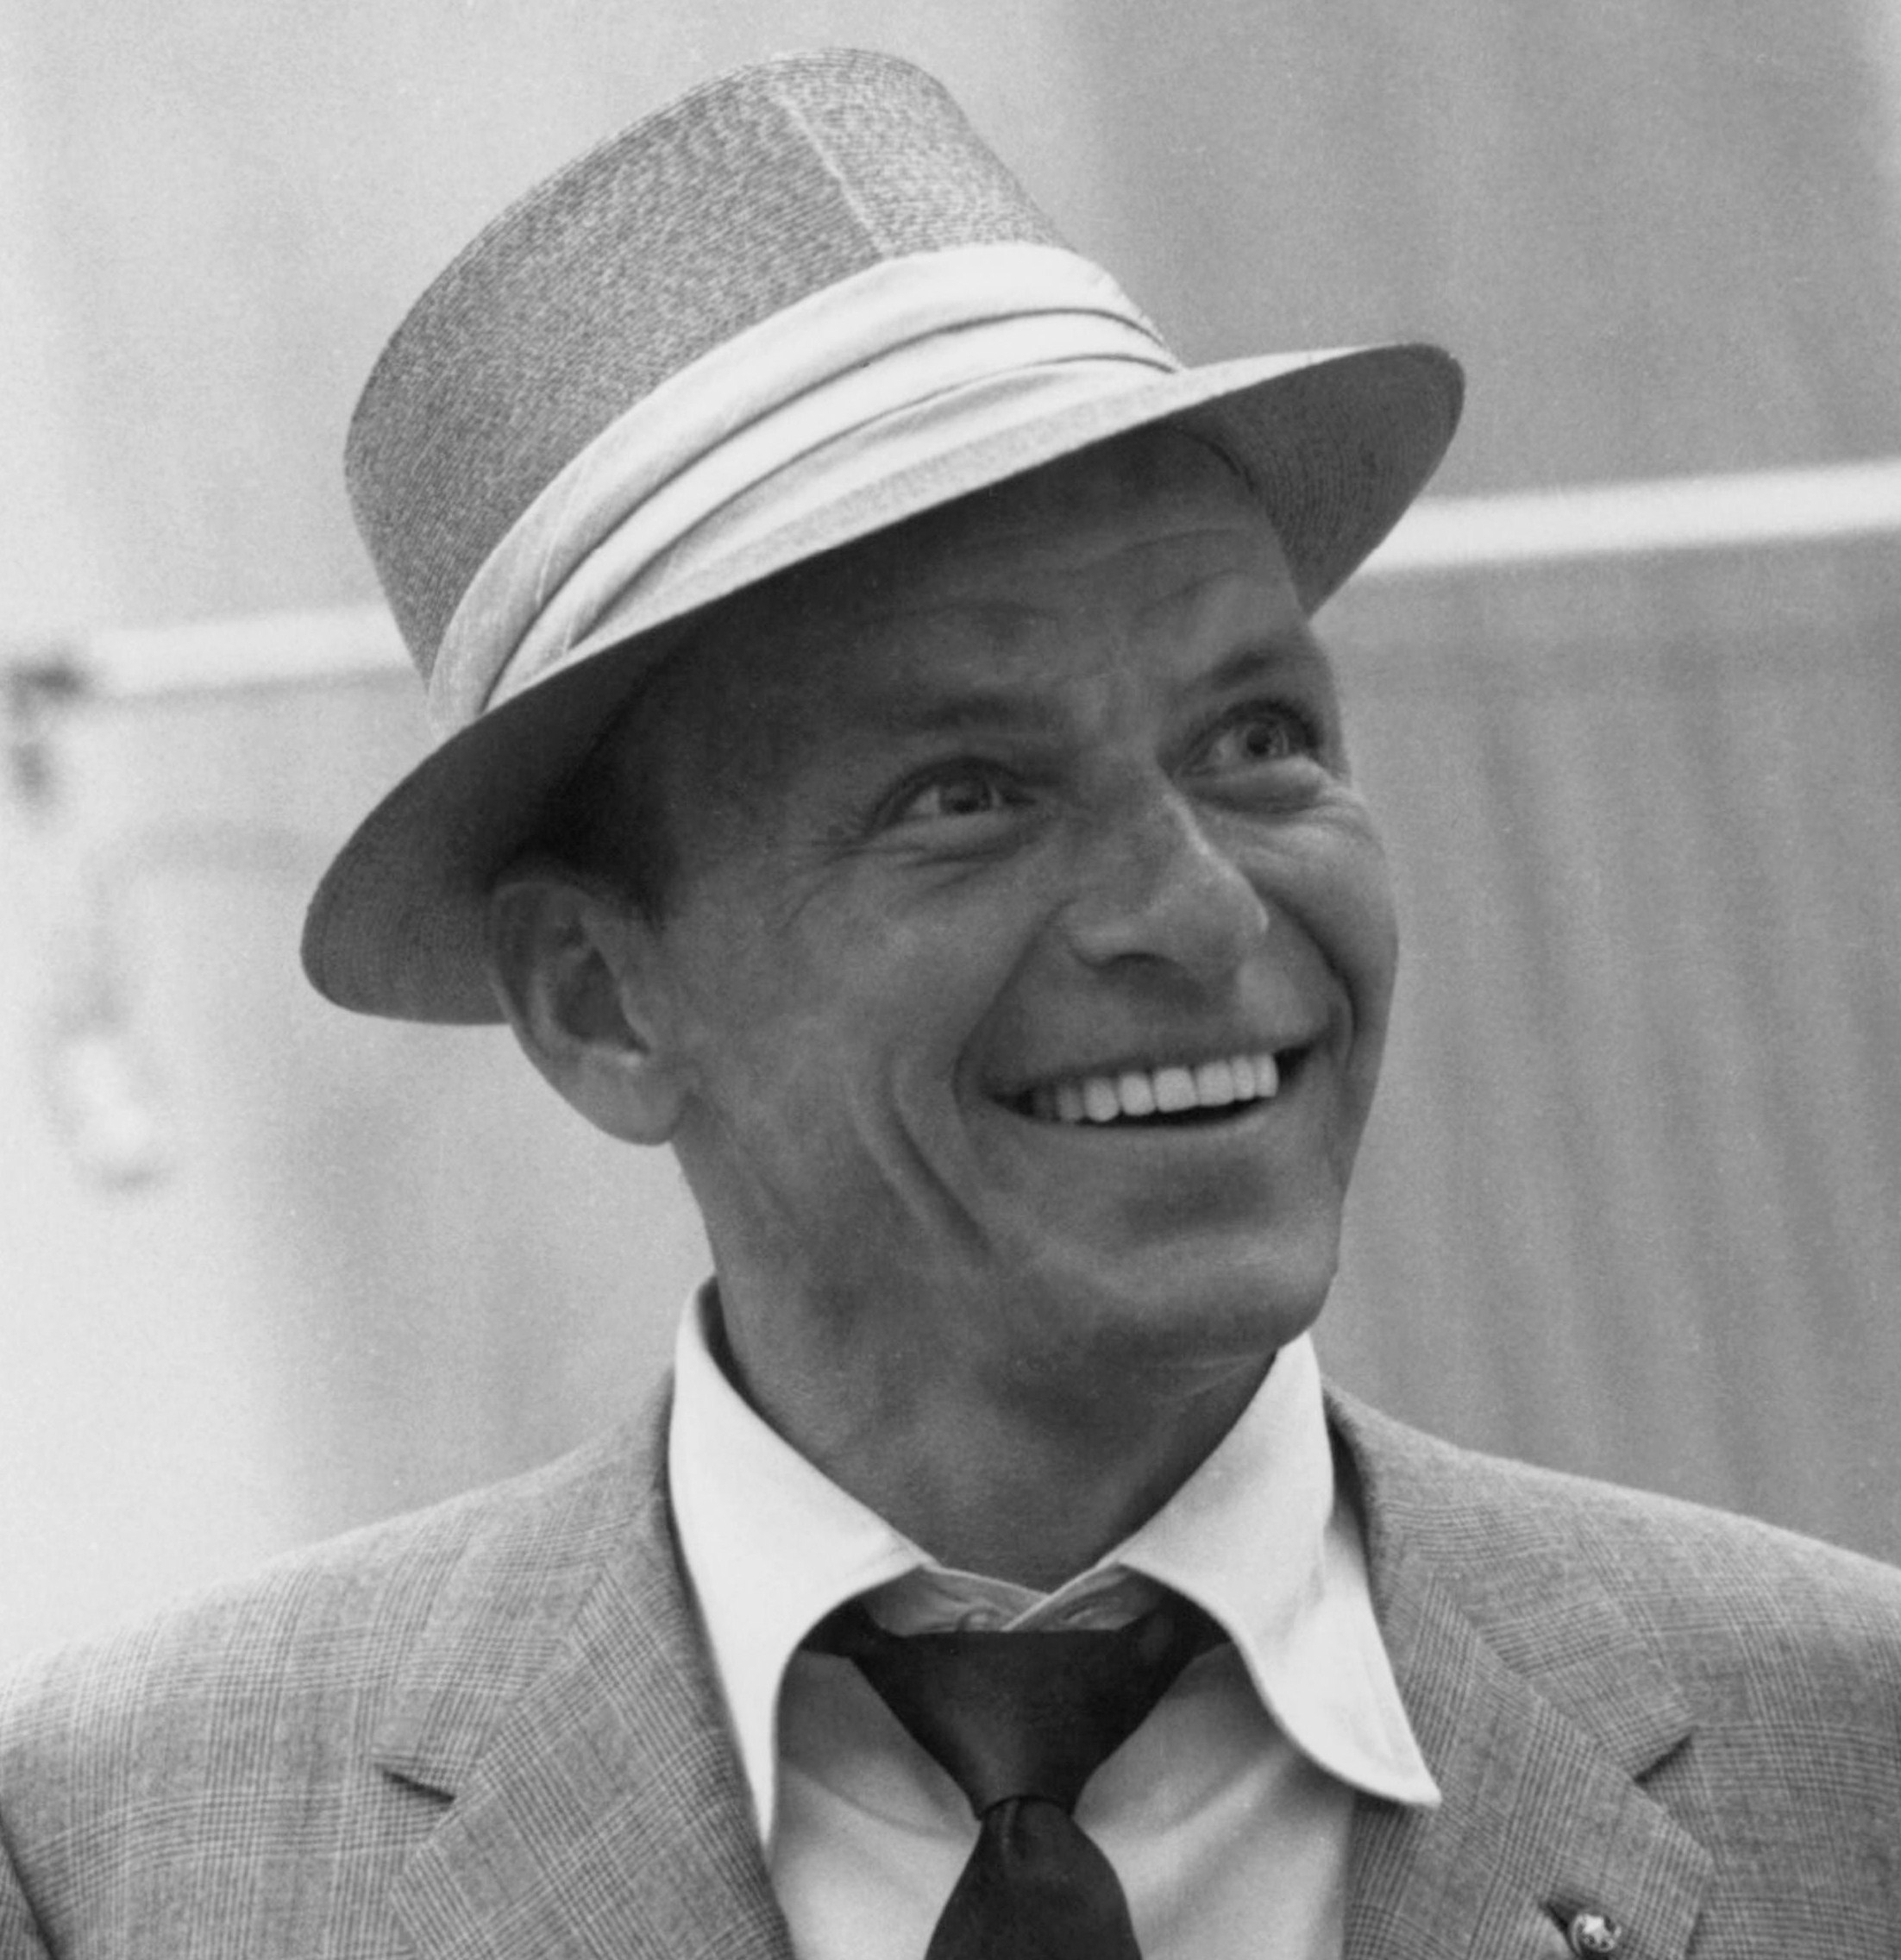 Full Wall Sticker Afac Sinatra Thoughts Vlog Mentions Contigo Fans Of